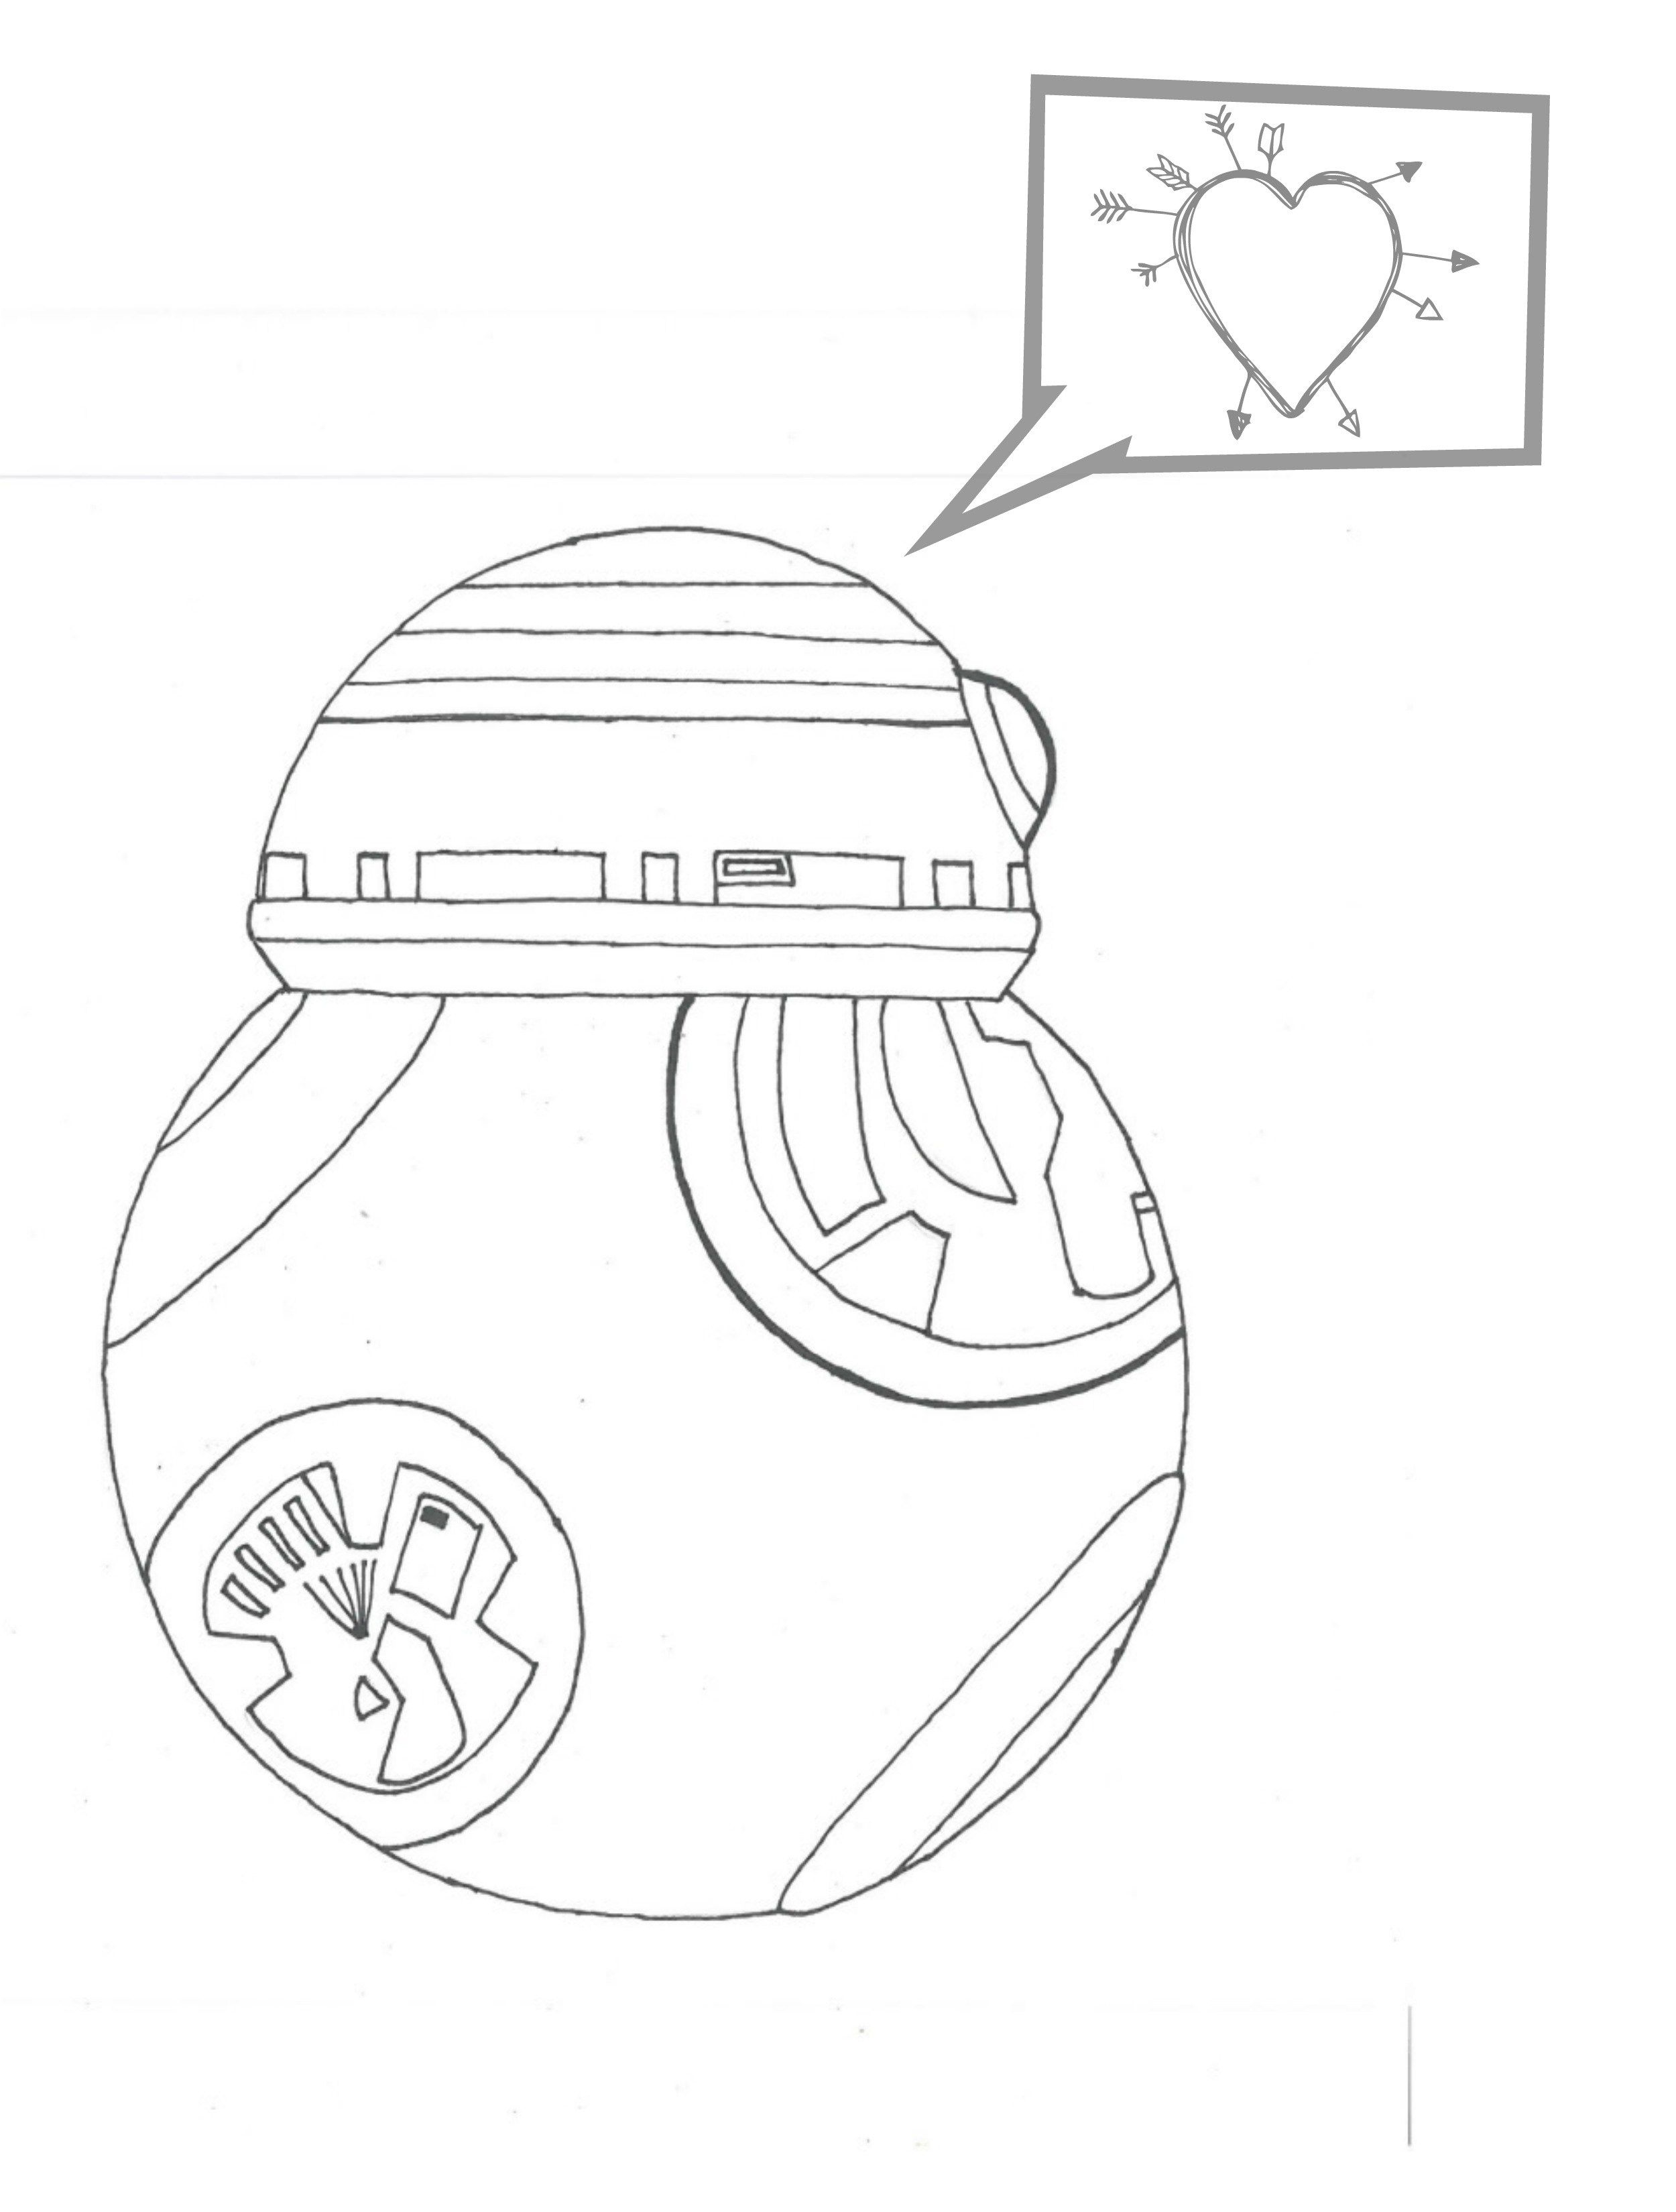 8 More Star Wars Inspired Valentines Coloring Pages Valentine Coloring Pages Star Wars Valentines Printable Valentine Coloring